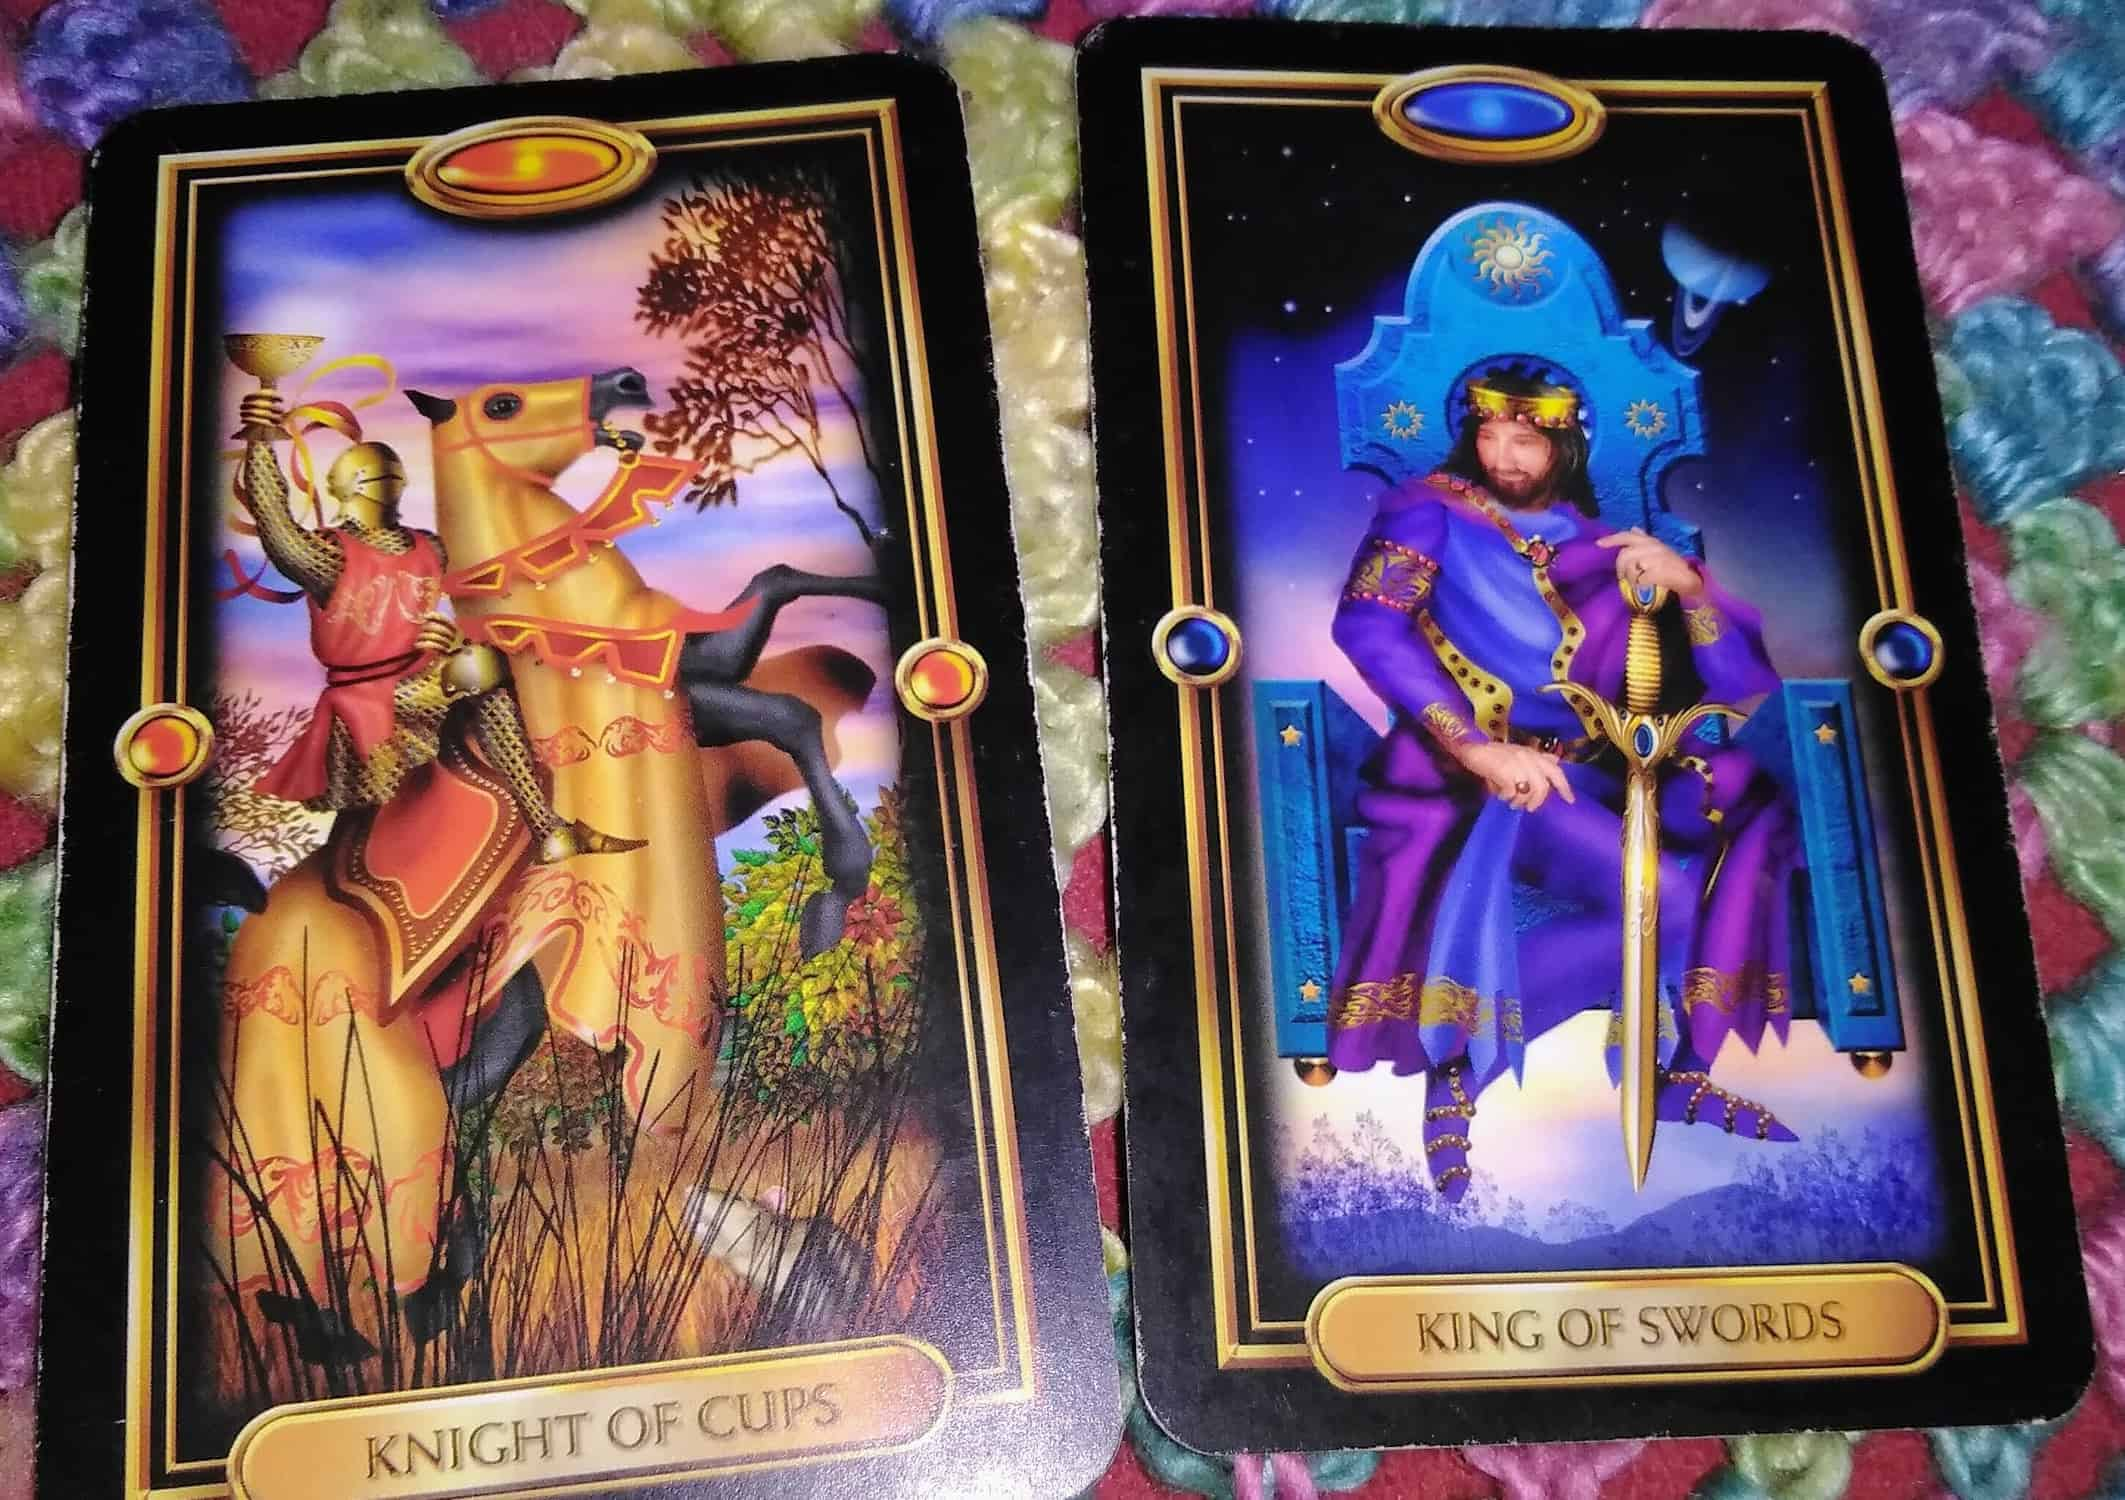 Knight of Cups King of Swords